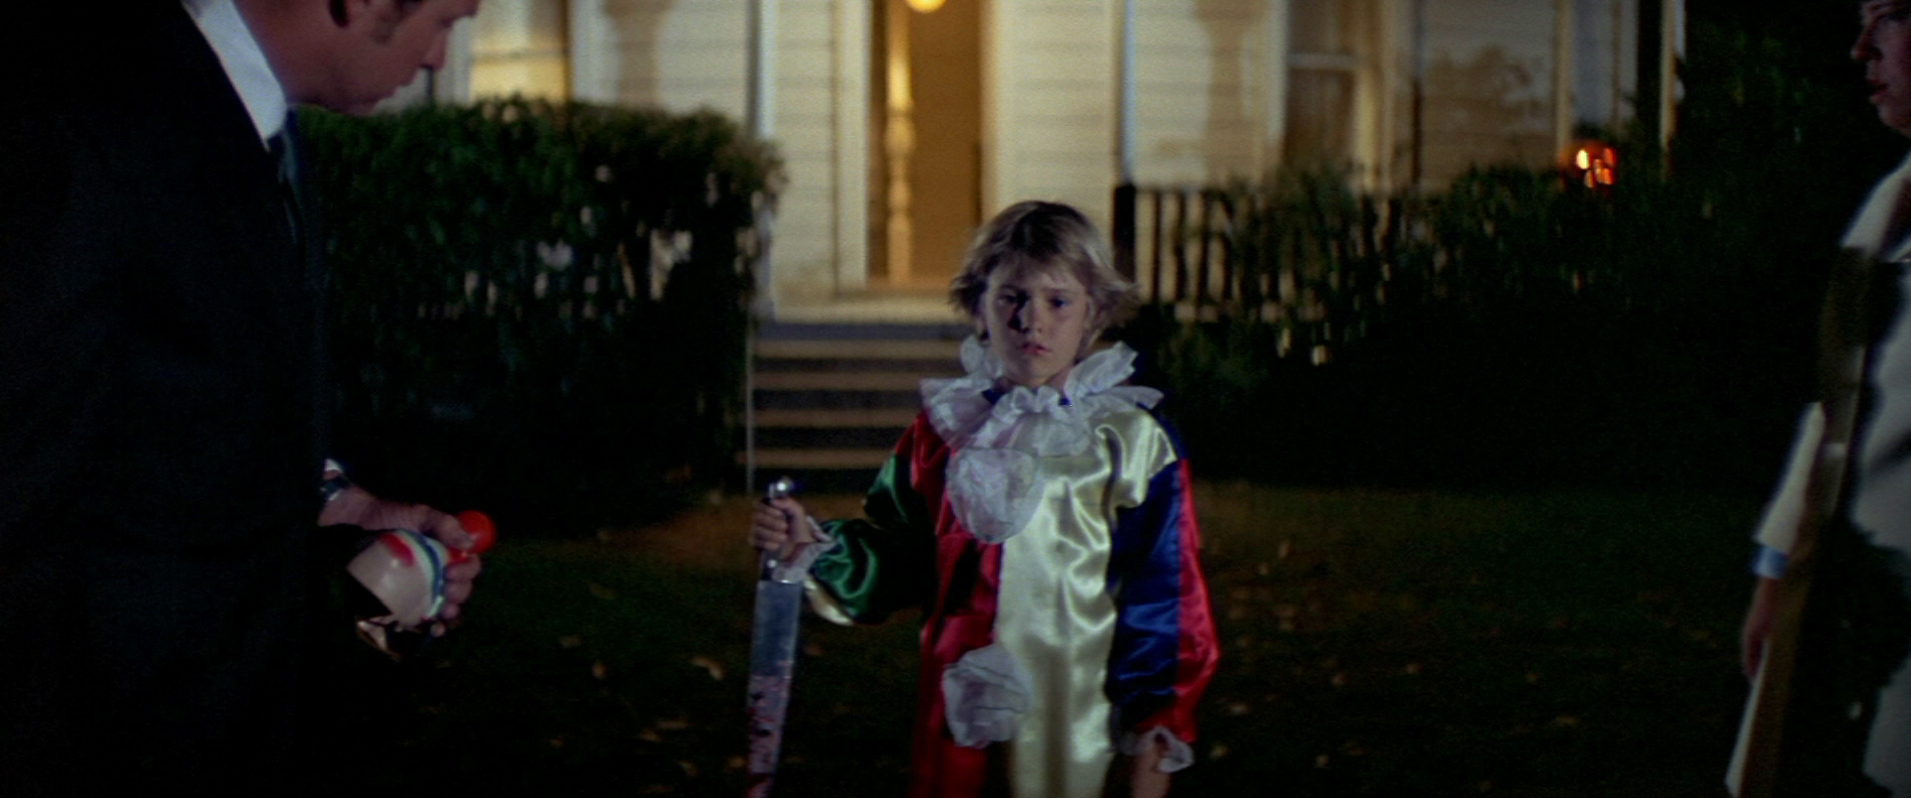 halloween's michael myers and the terror of what we can't understand